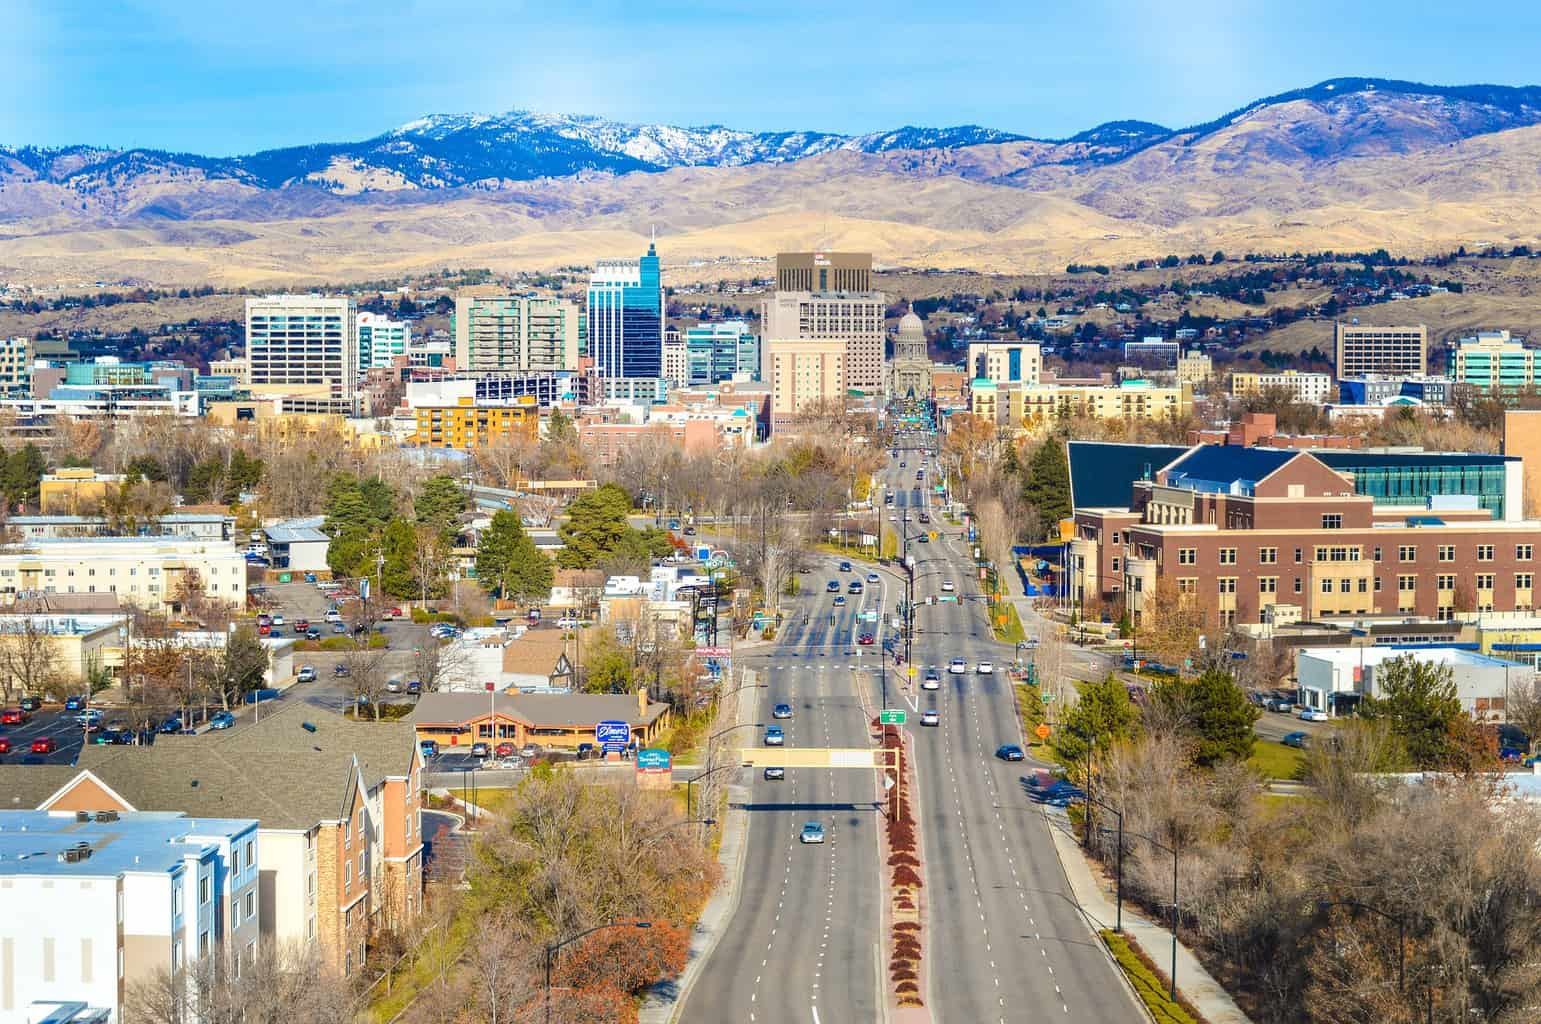 37 Fun Things To Do in Boise Idaho (A Local's Guide)